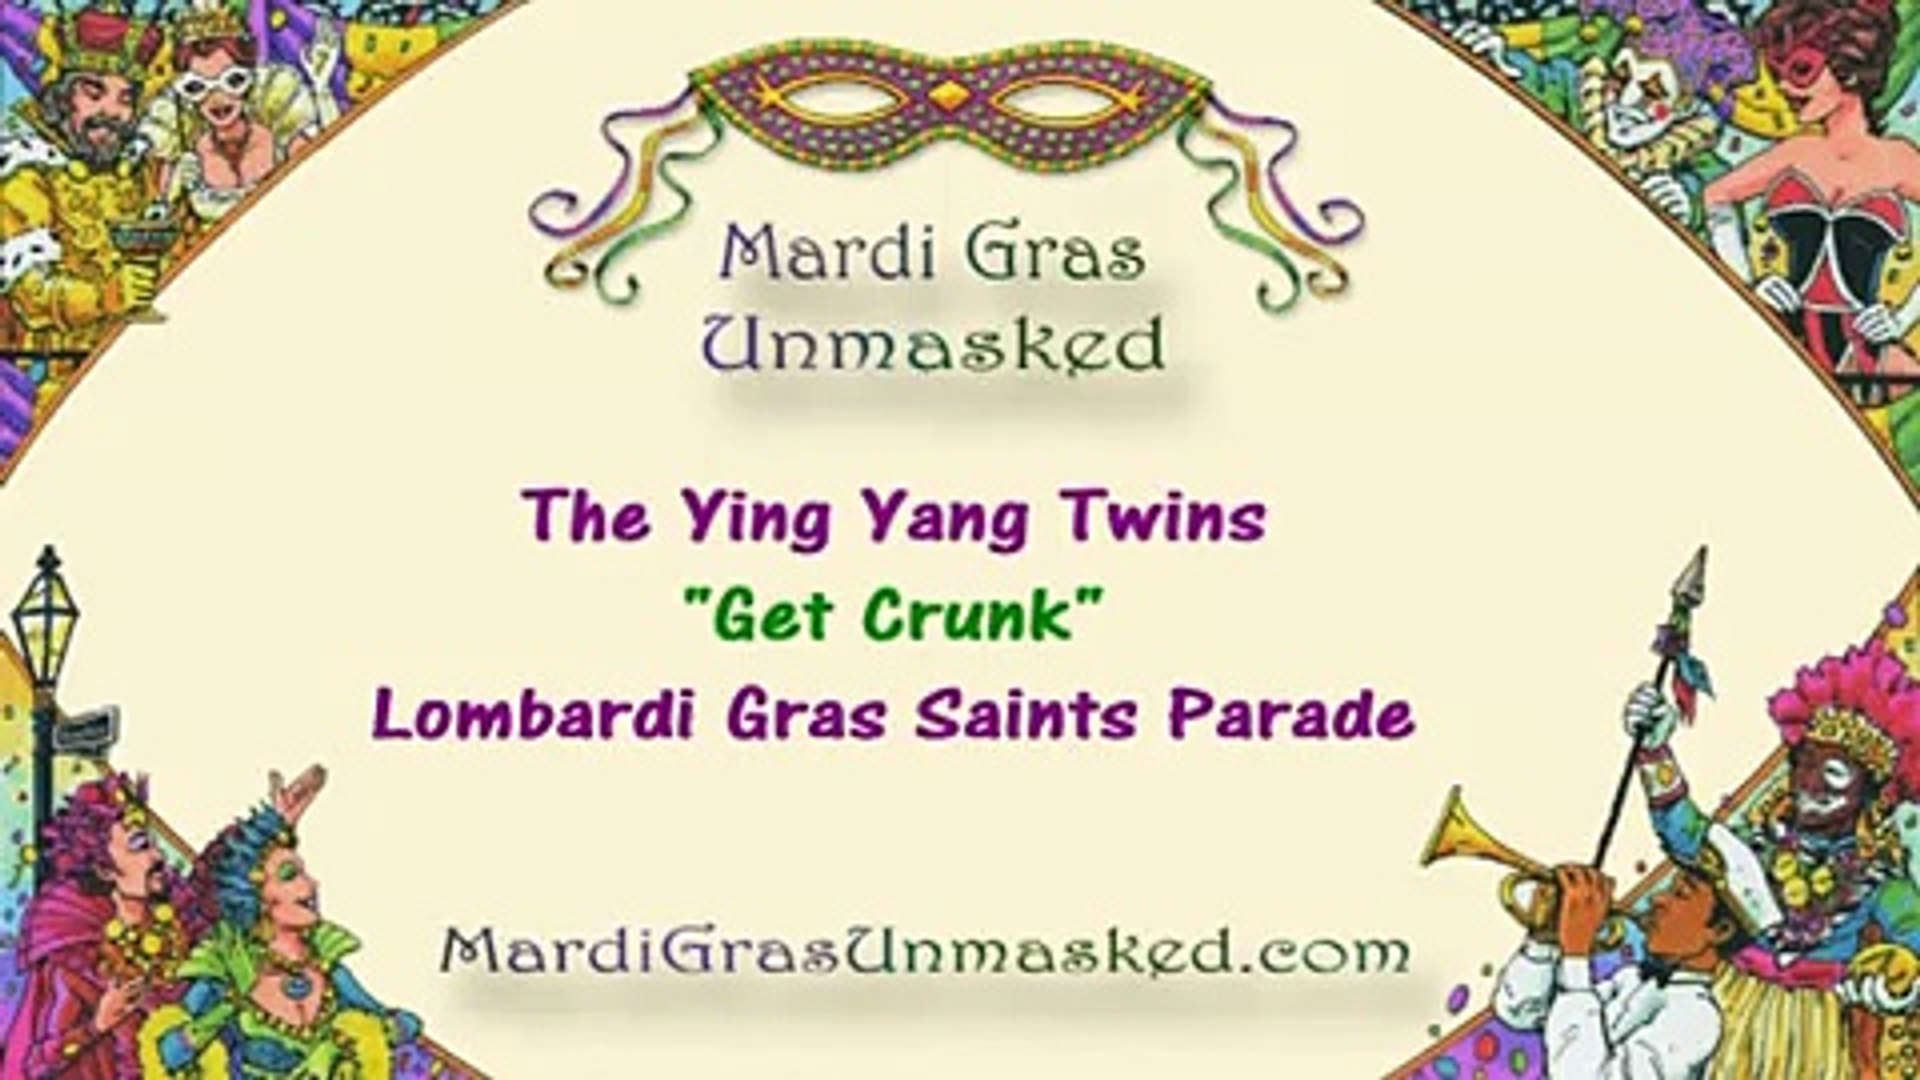 Ying Yang Twins Christmas.Ying Yang Twins Perform Halftime Stand Up And Get Crunk